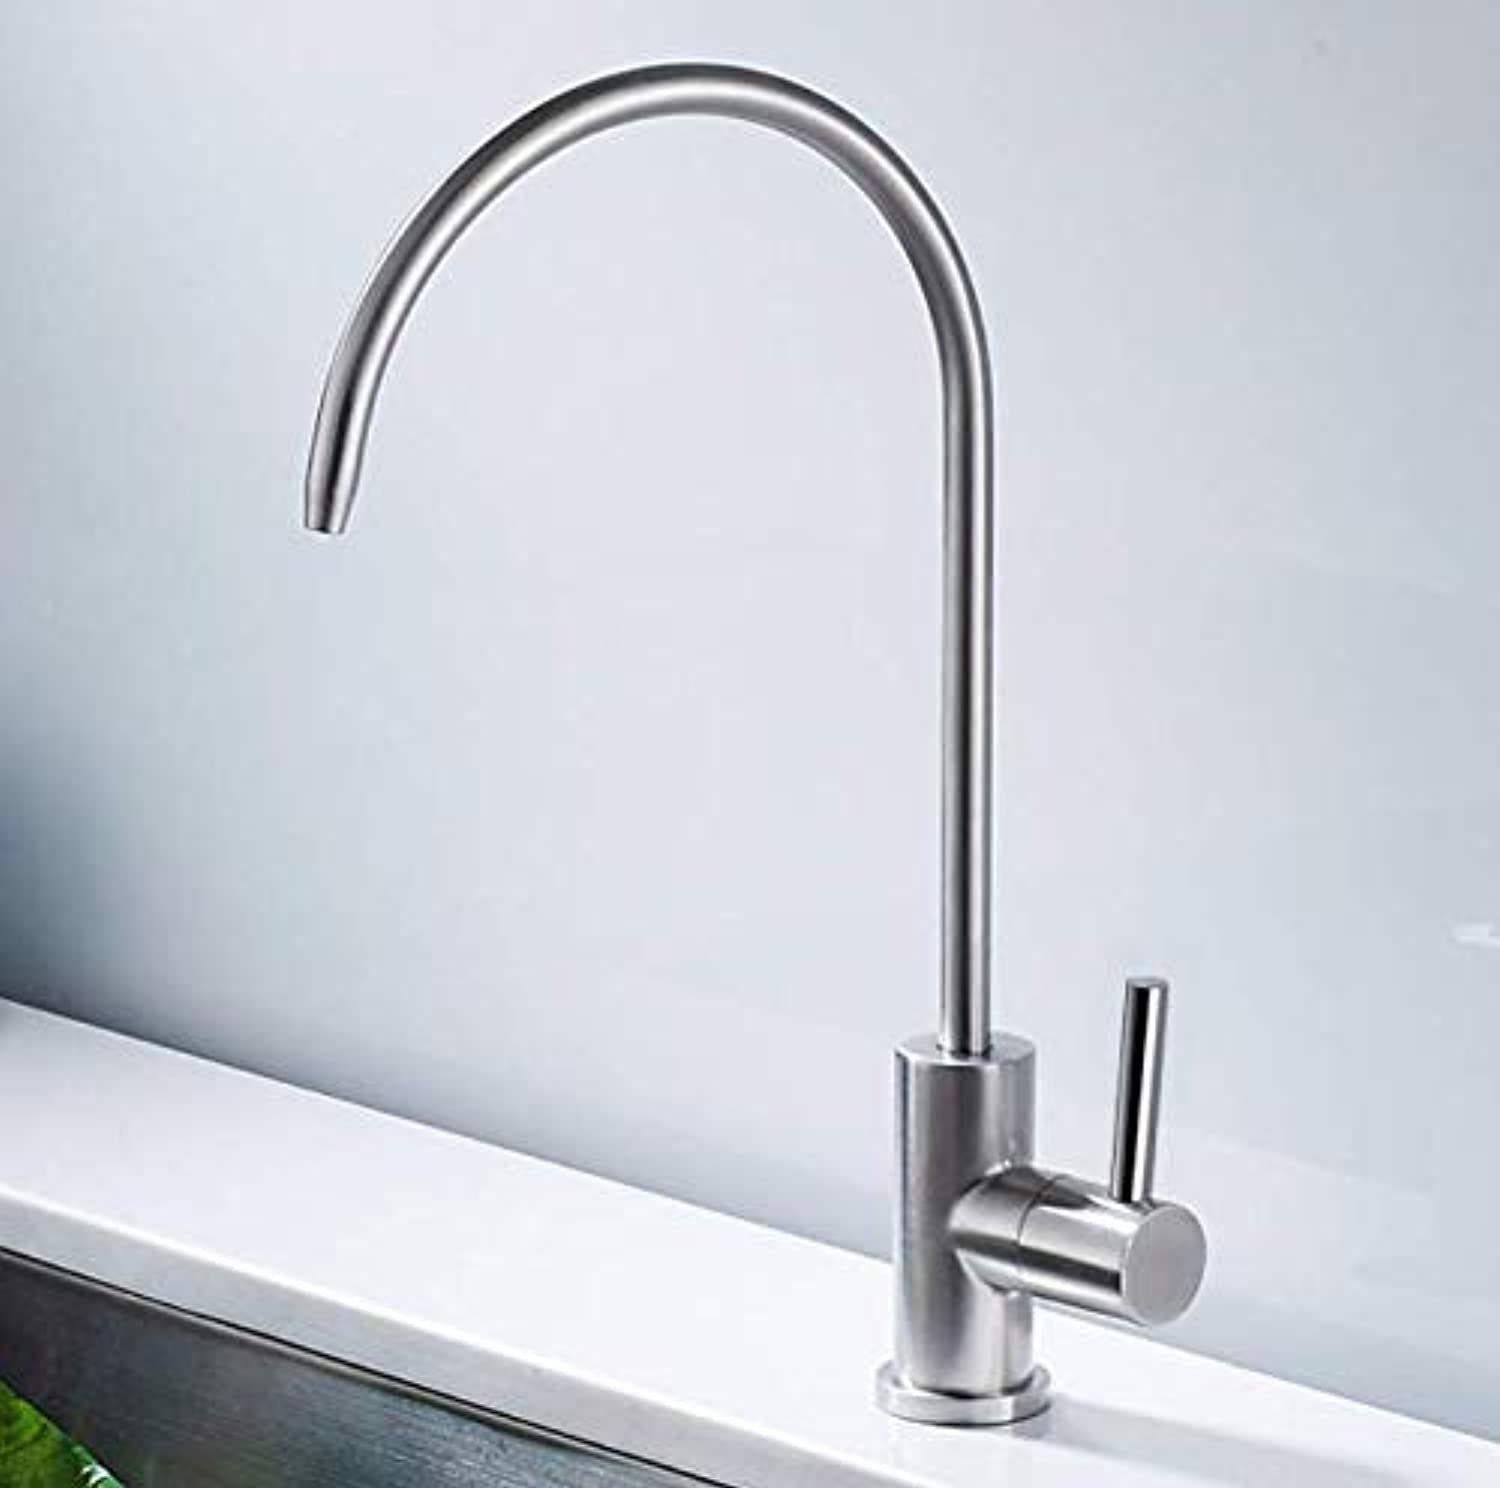 Bathroom Faucet 304 Stainless Steel Kitchen Water Purifier Straight Drinking Faucet Single Cold Water Wash Bowl Dish Pool Sink Pure Faucet